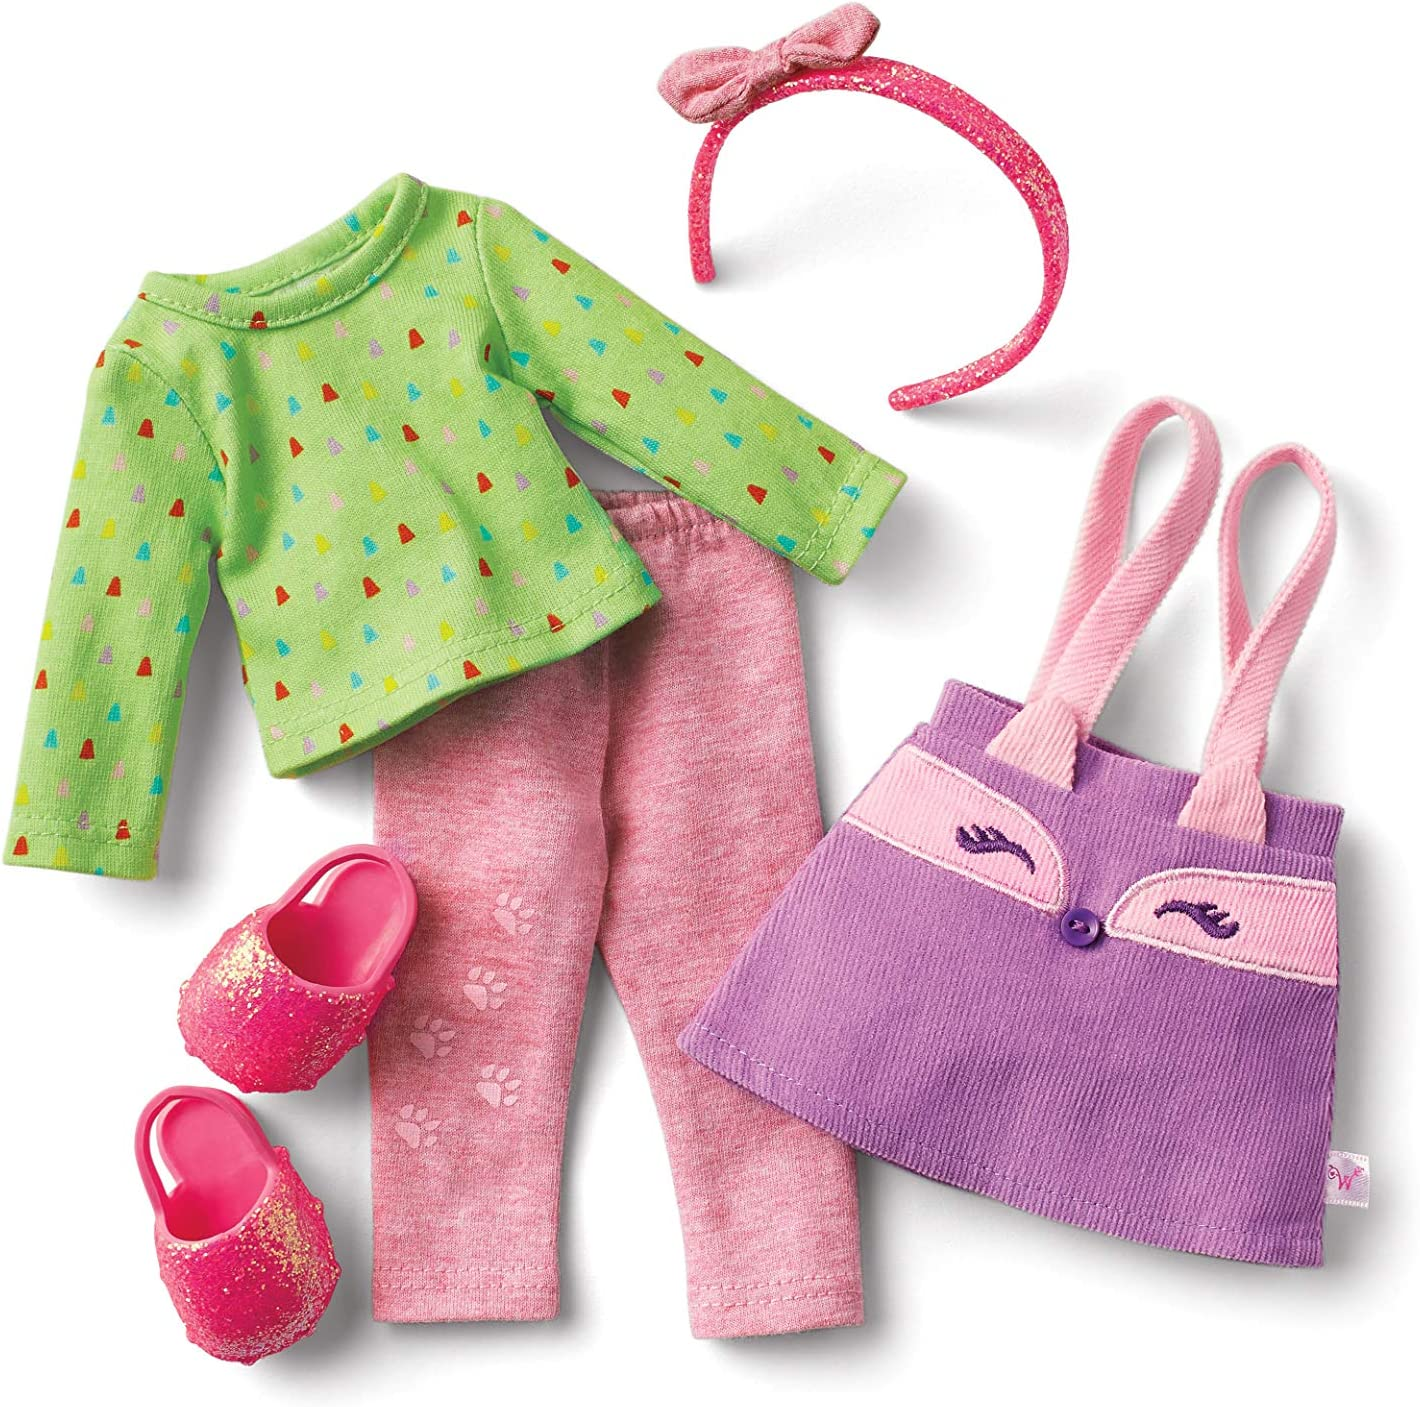 American Girl WellieWishers Smart as a Fox School Outfit for 14.5